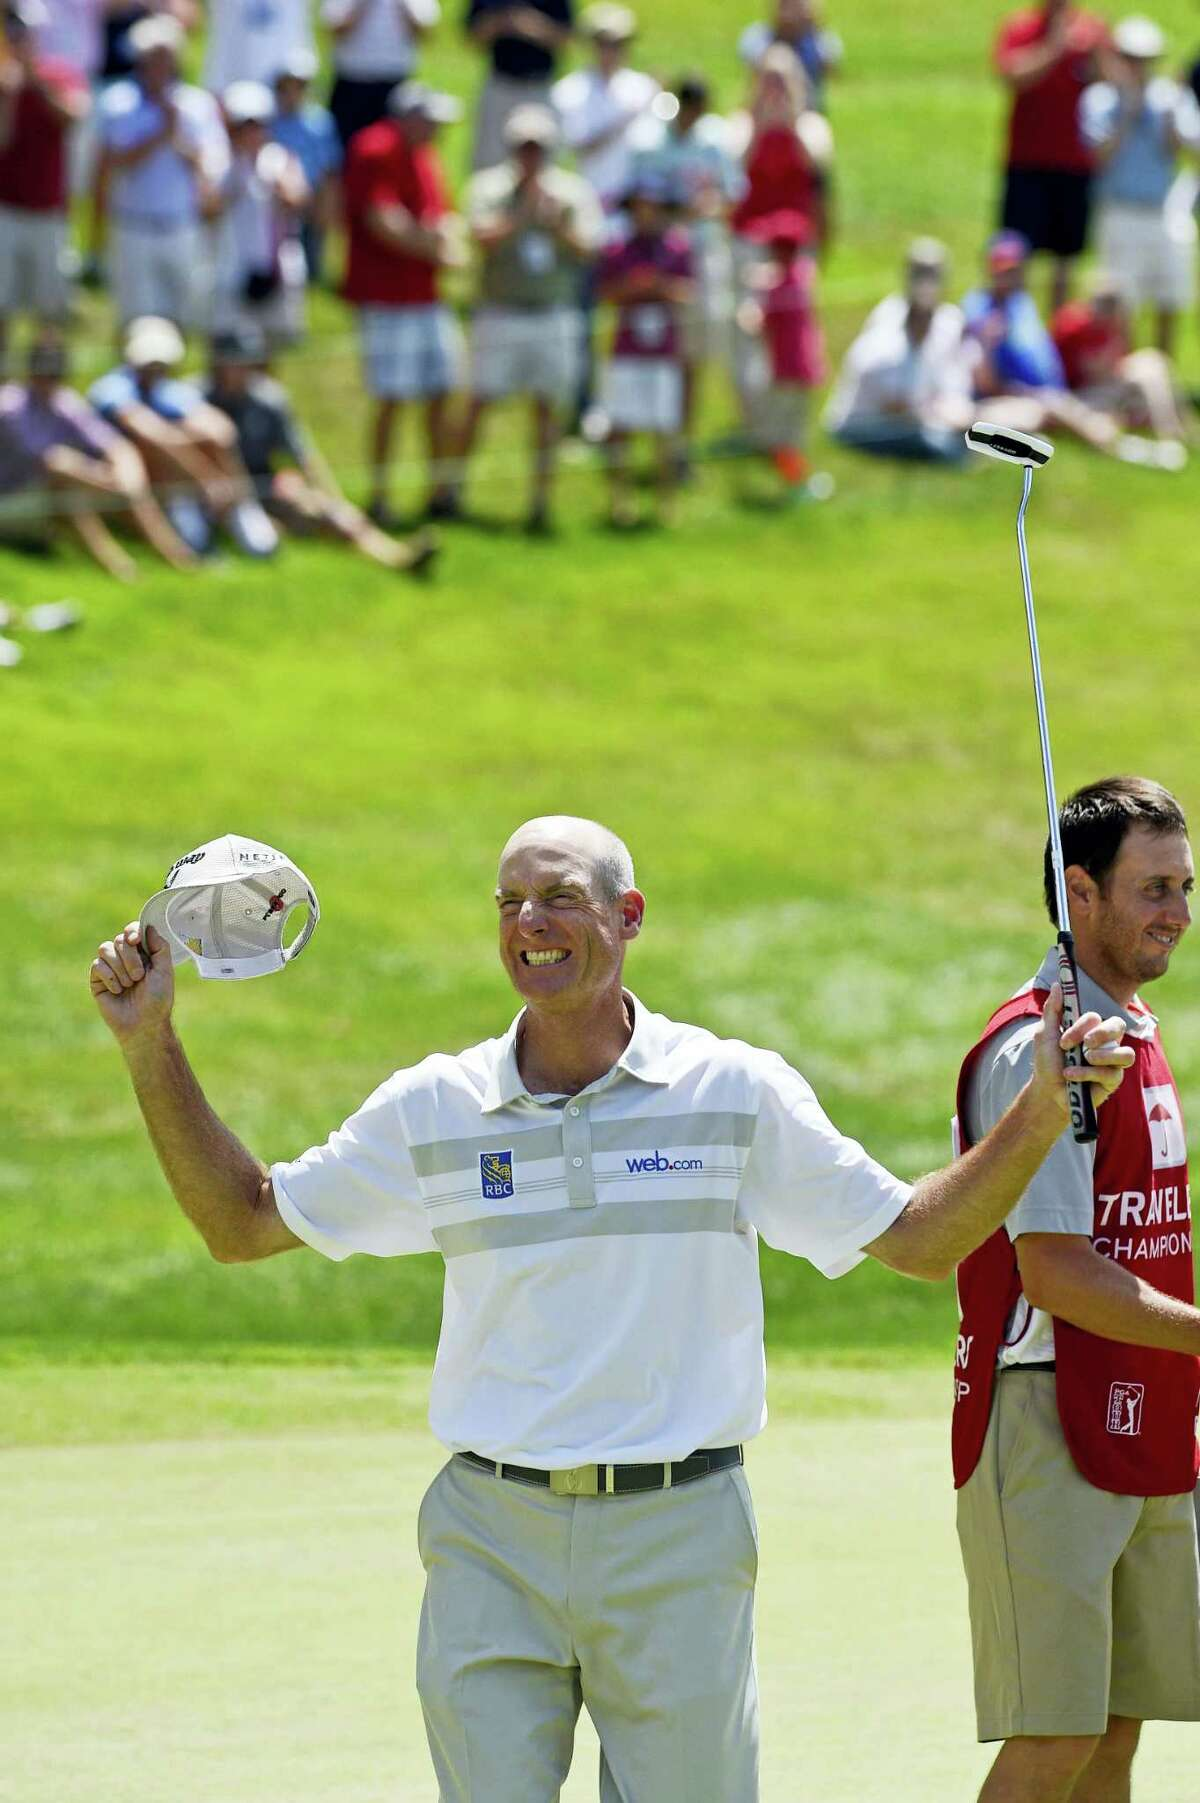 Jim Furyk celebrates after shooting a PGA-record 58 during the final round of the Travelers in Cromwell on Sunday.